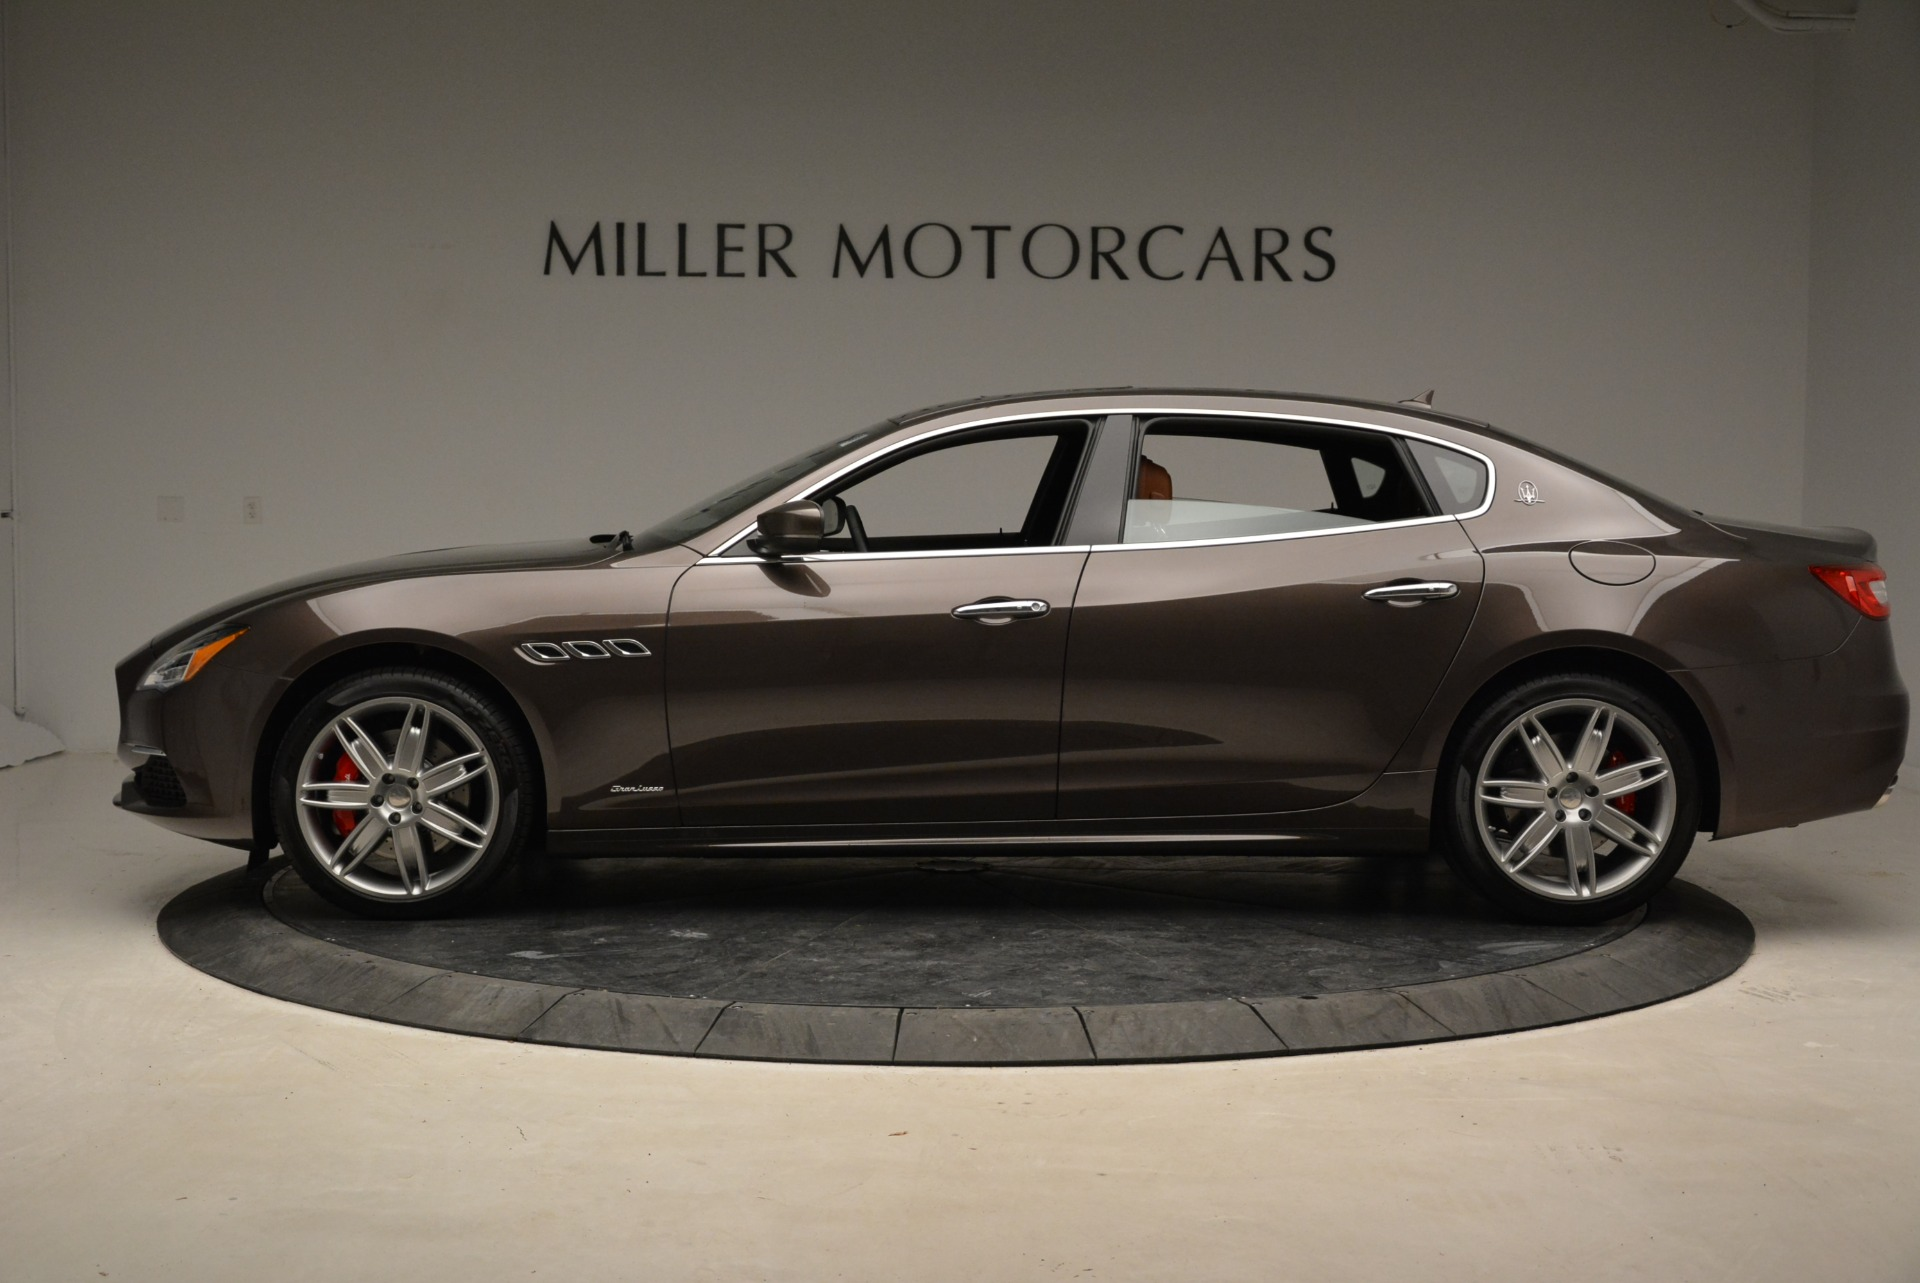 New 2018 Maserati Quattroporte S Q4 GranLusso For Sale In Greenwich, CT 1926_p4